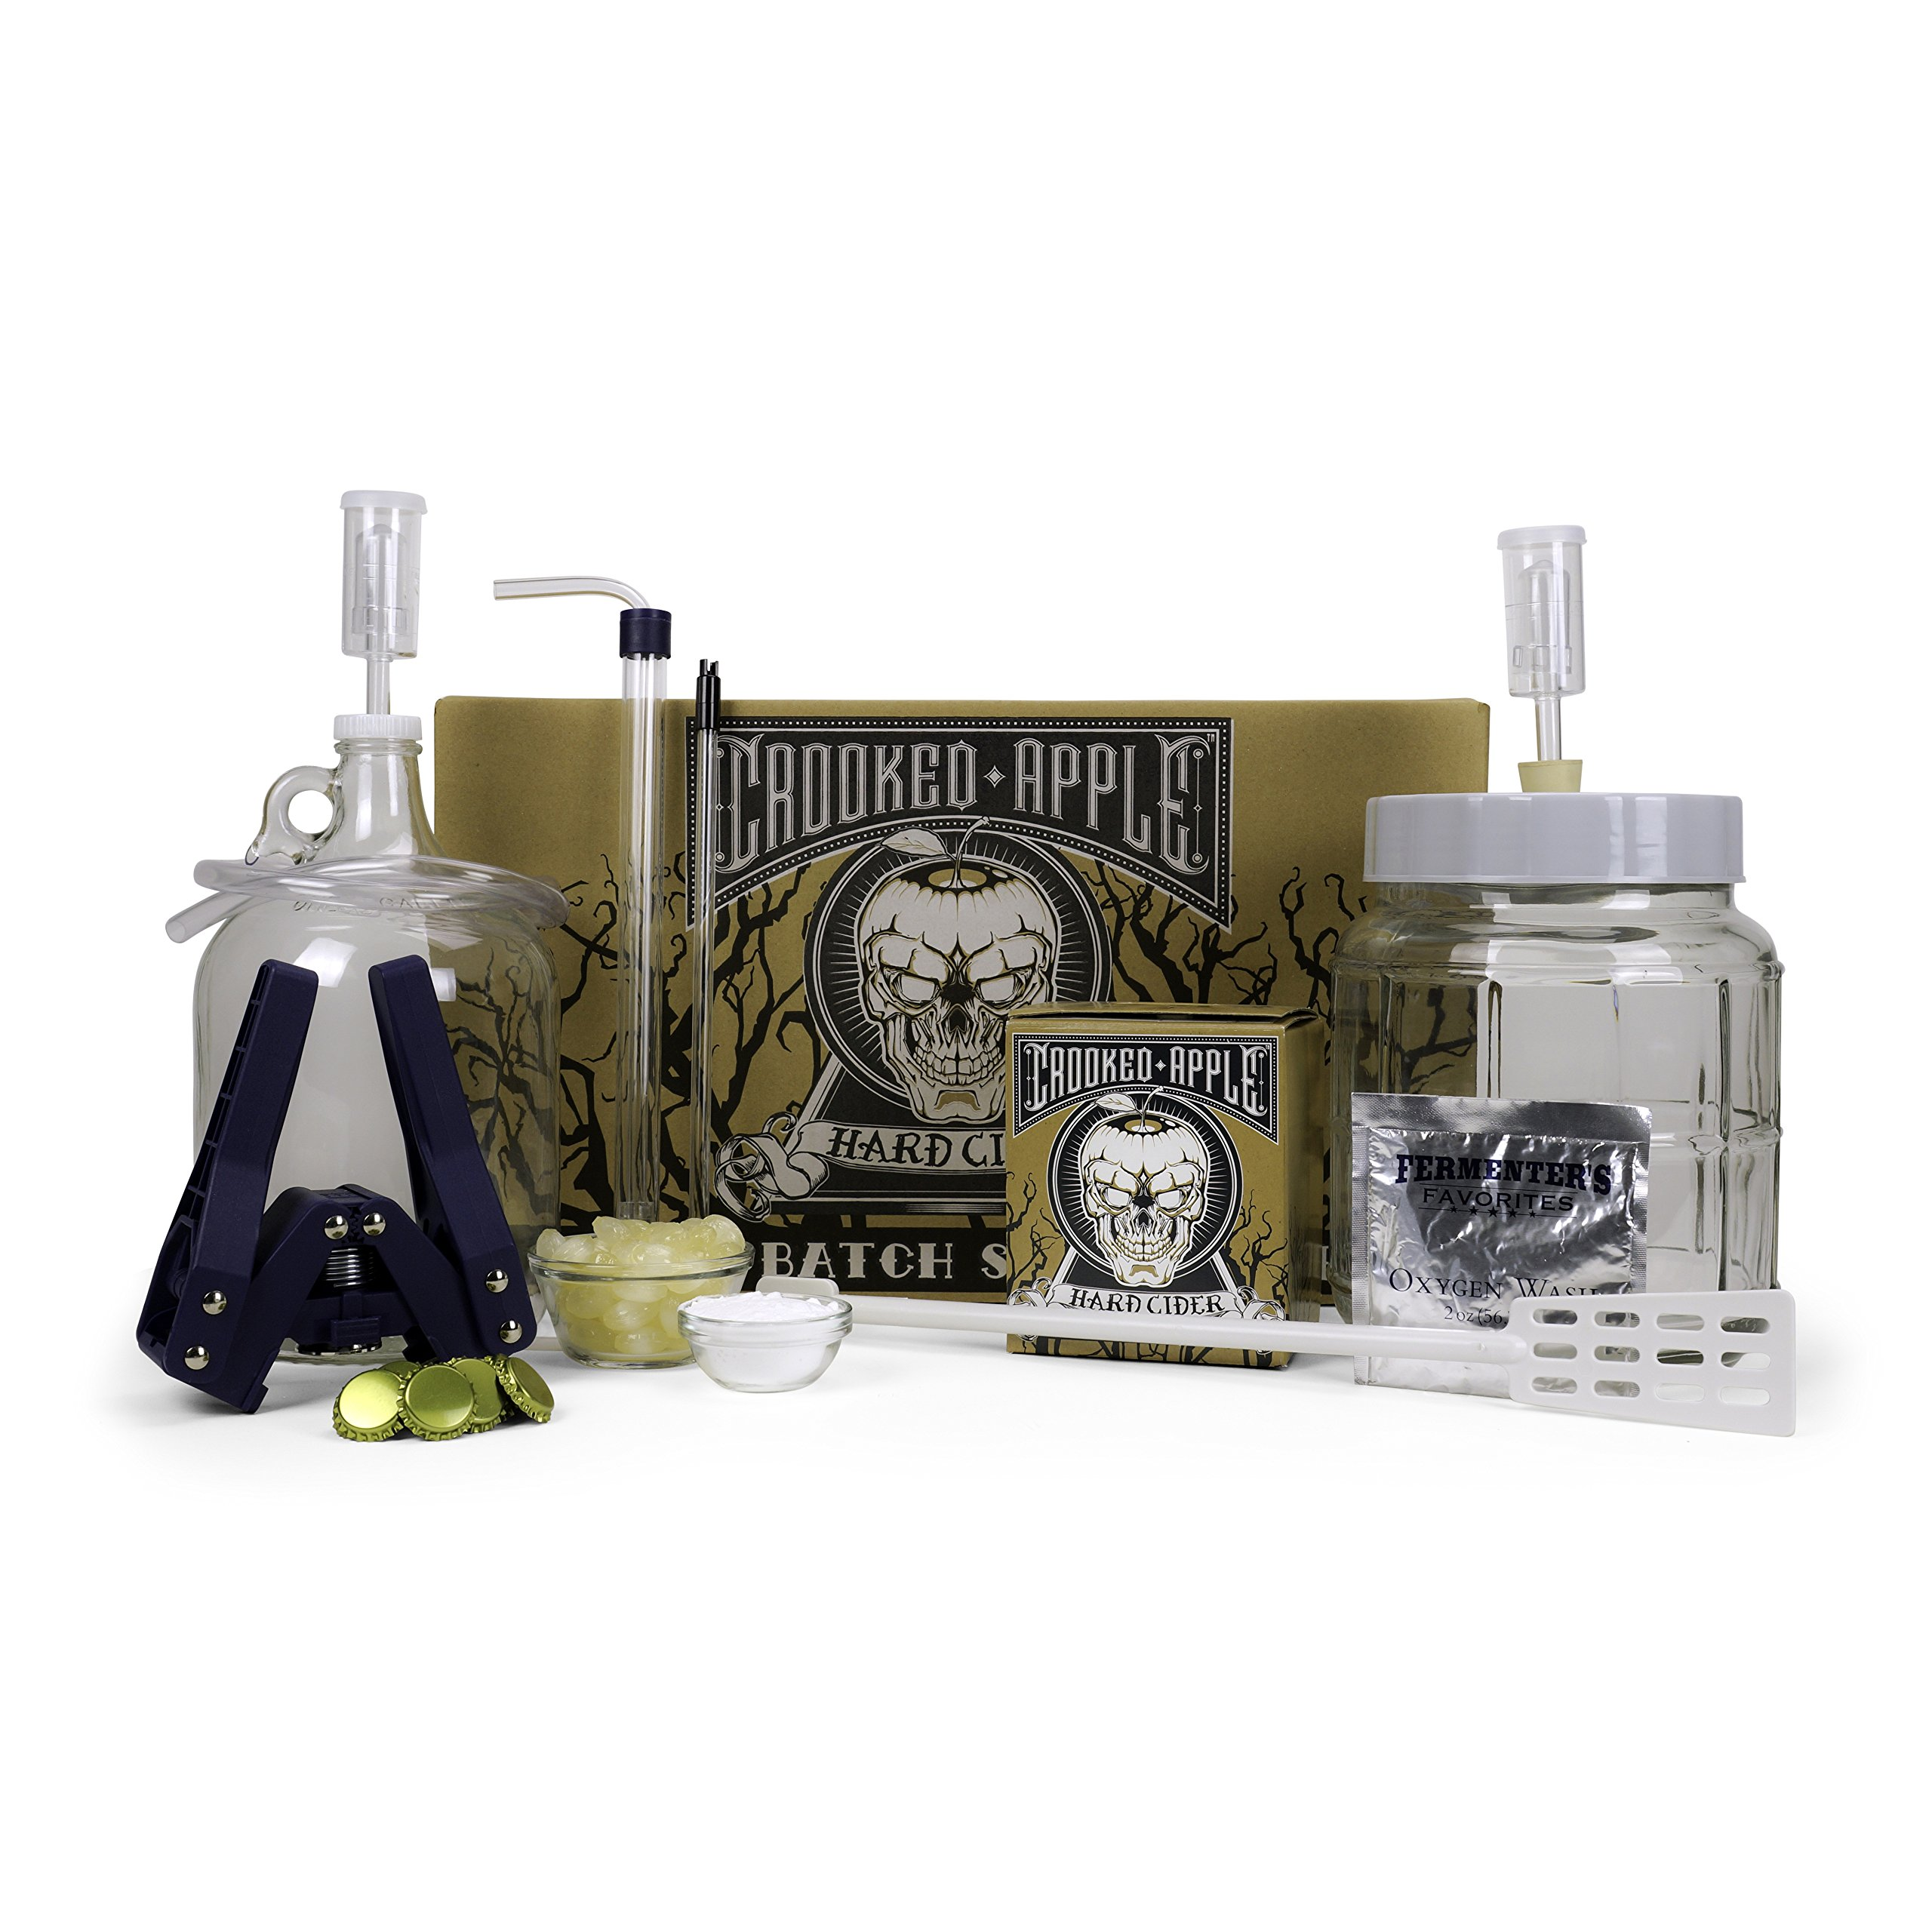 Northern Brewer - Crooked Apple Hard Cider Starter Kit, Makes One Gallon by Northern Brewer